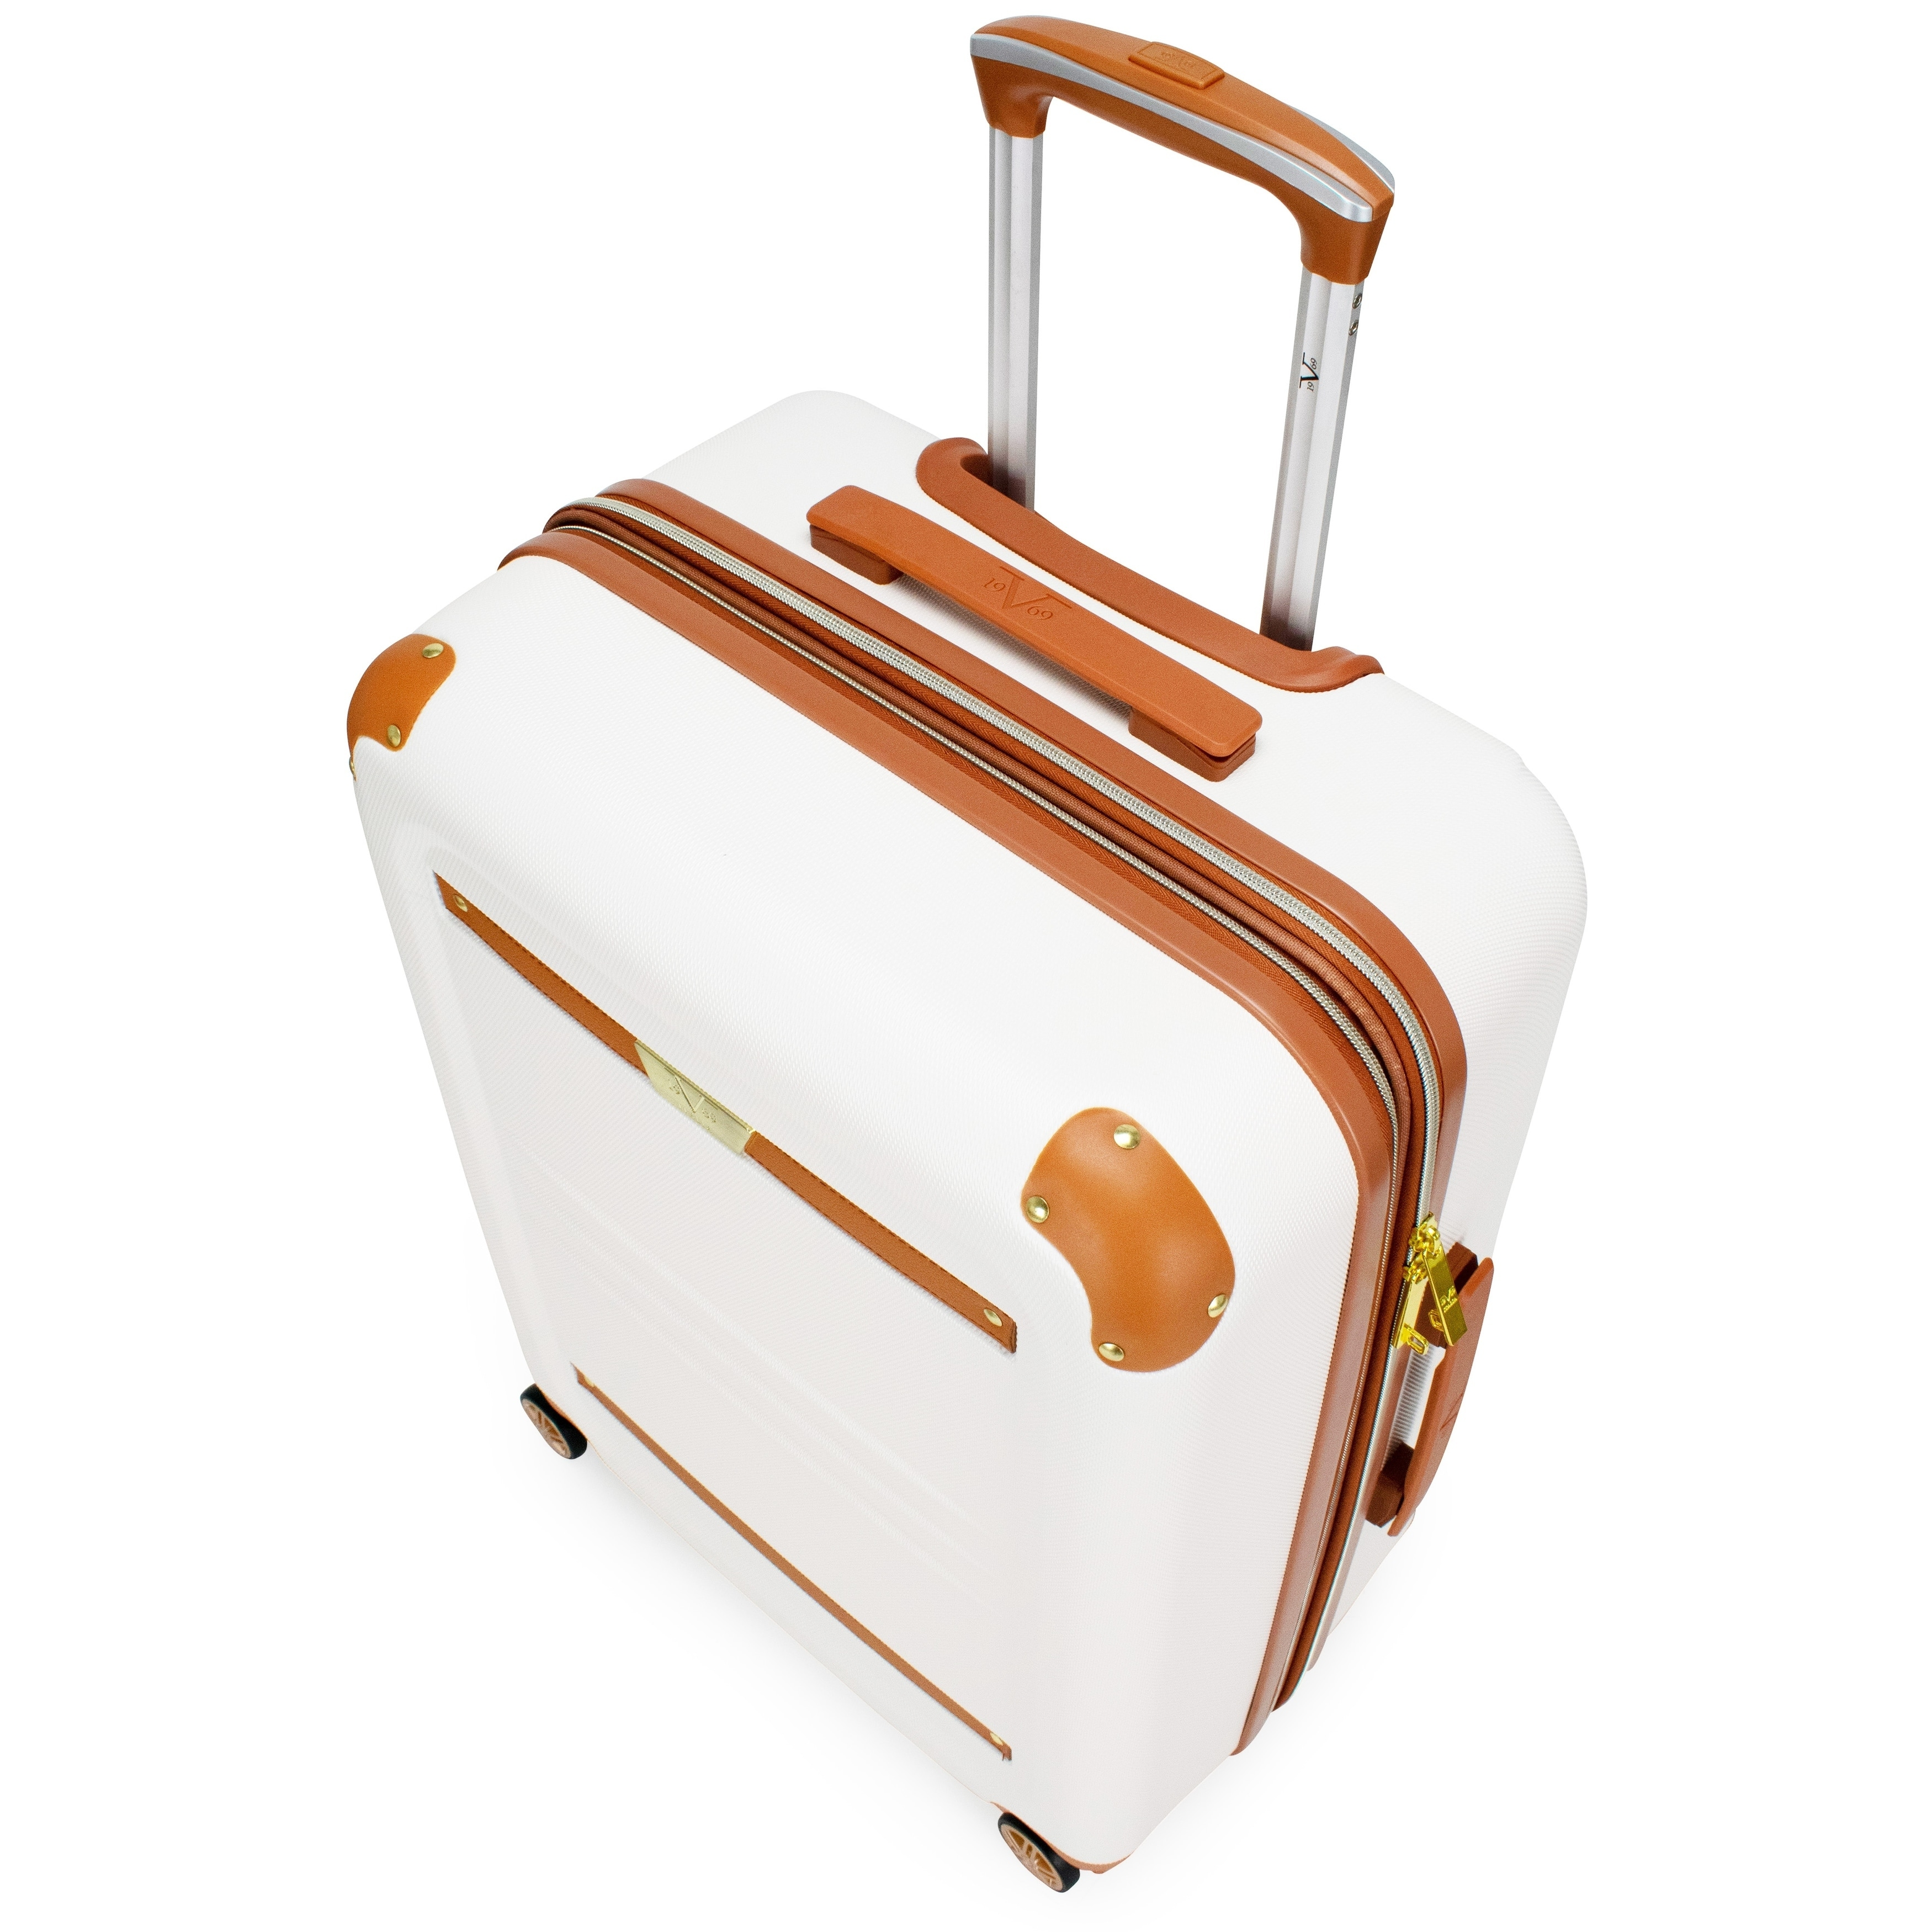 6801478ae Shop 19V69 Italia Vintage Hard Expandable Spinner Luggage Set (3-Piece) -  Free Shipping Today - Overstock - 27994928